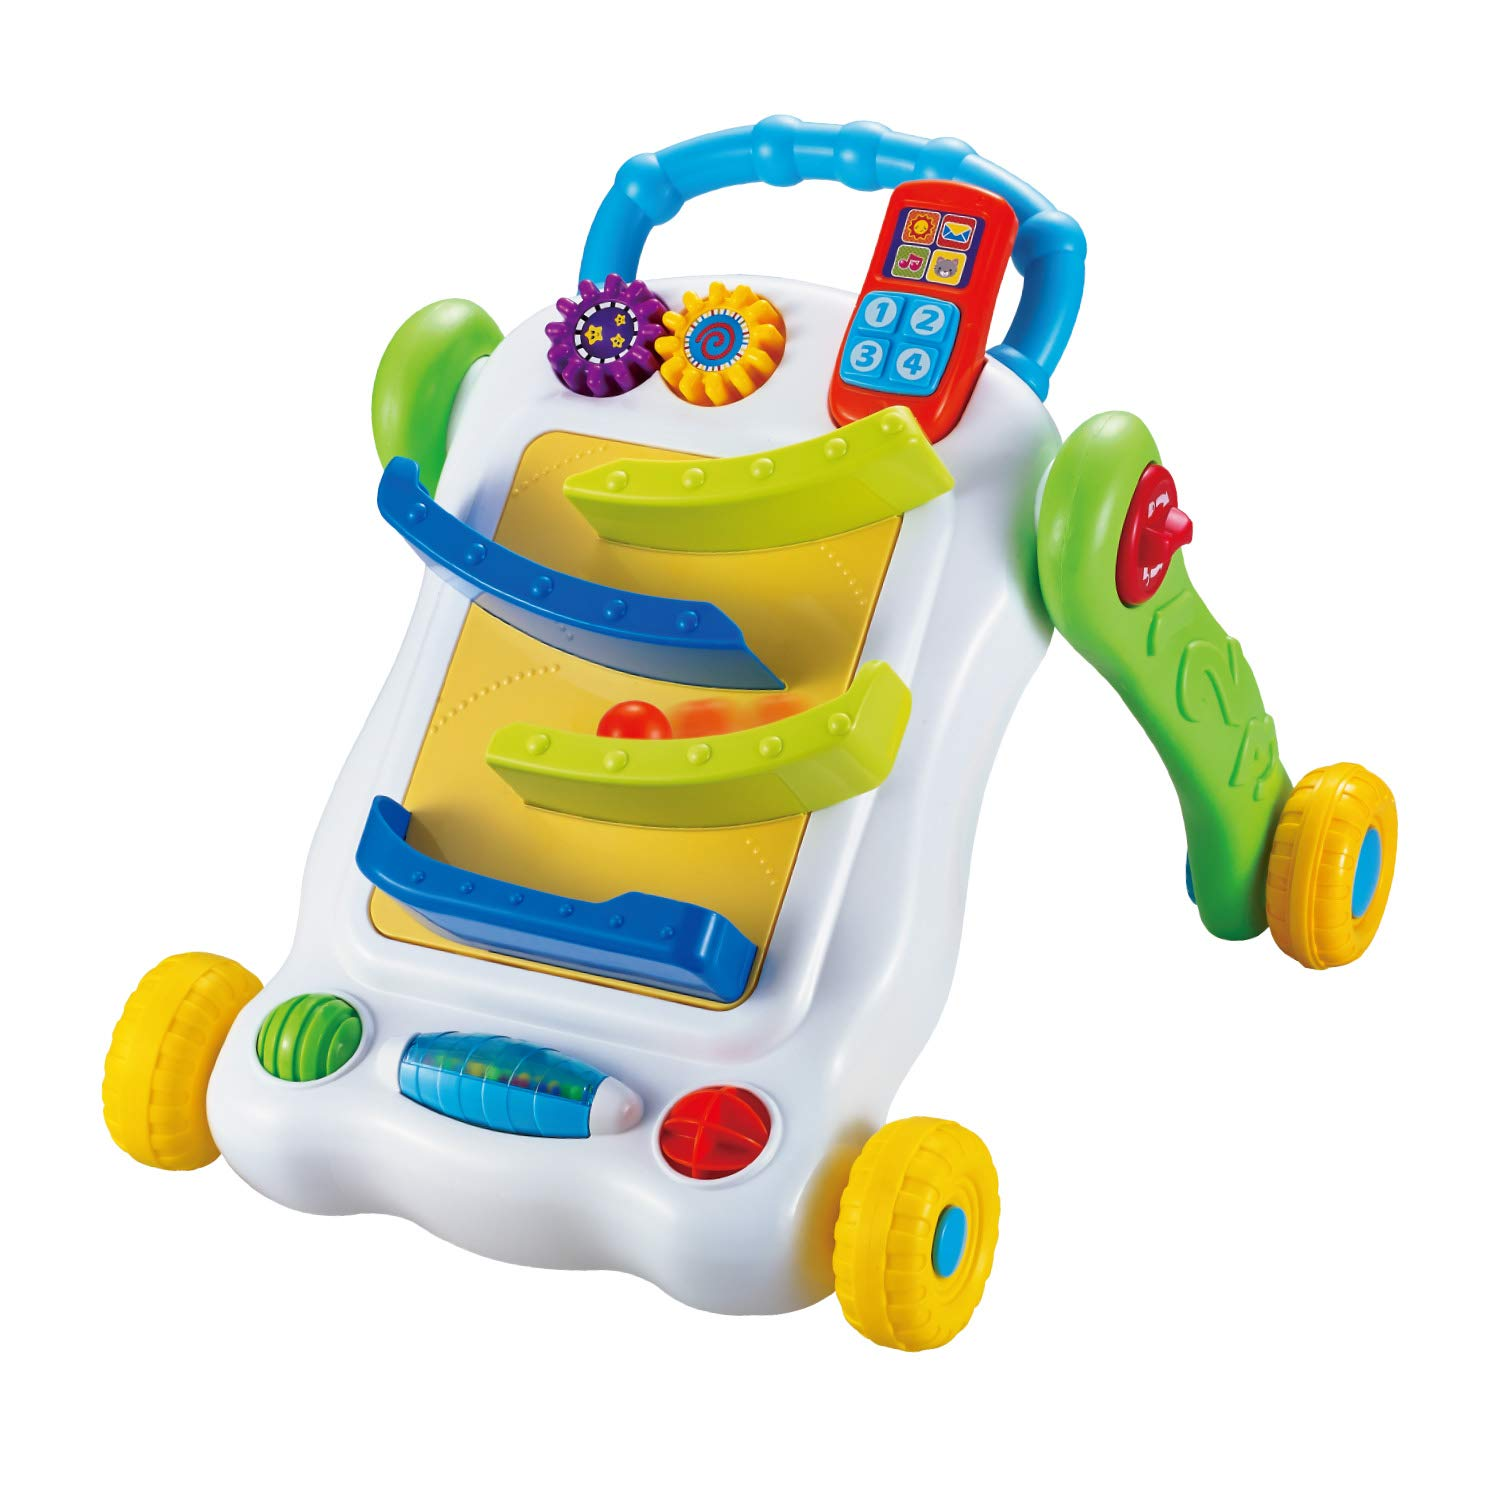 infunbebe Activity Ball Run Walker Early Walking Development Toy for Toddlers, Interactive Learning Walker with Locking Function & Activity Ball Run Panel, Multicolor